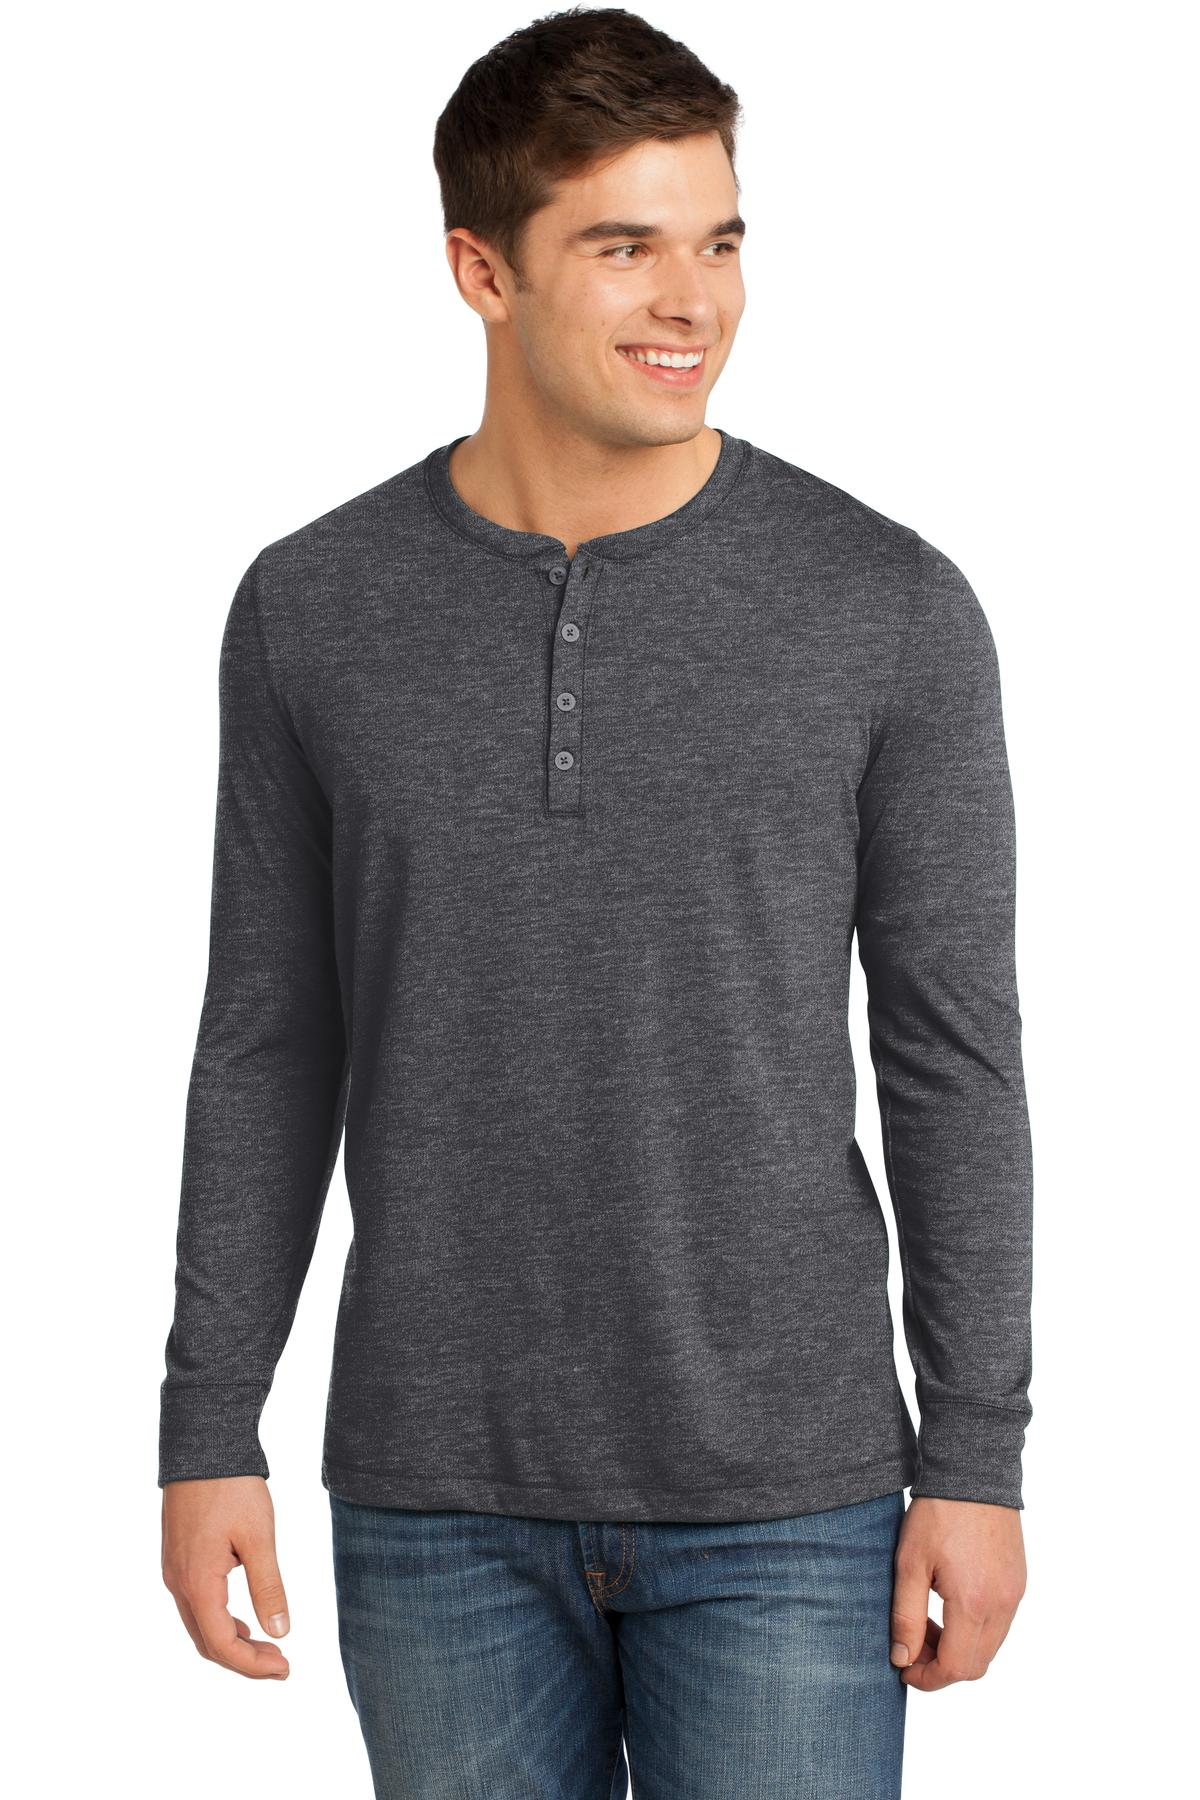 District ®  - Young Mens Gravel 50/50 Long Sleeve Henley Tee. DT1401